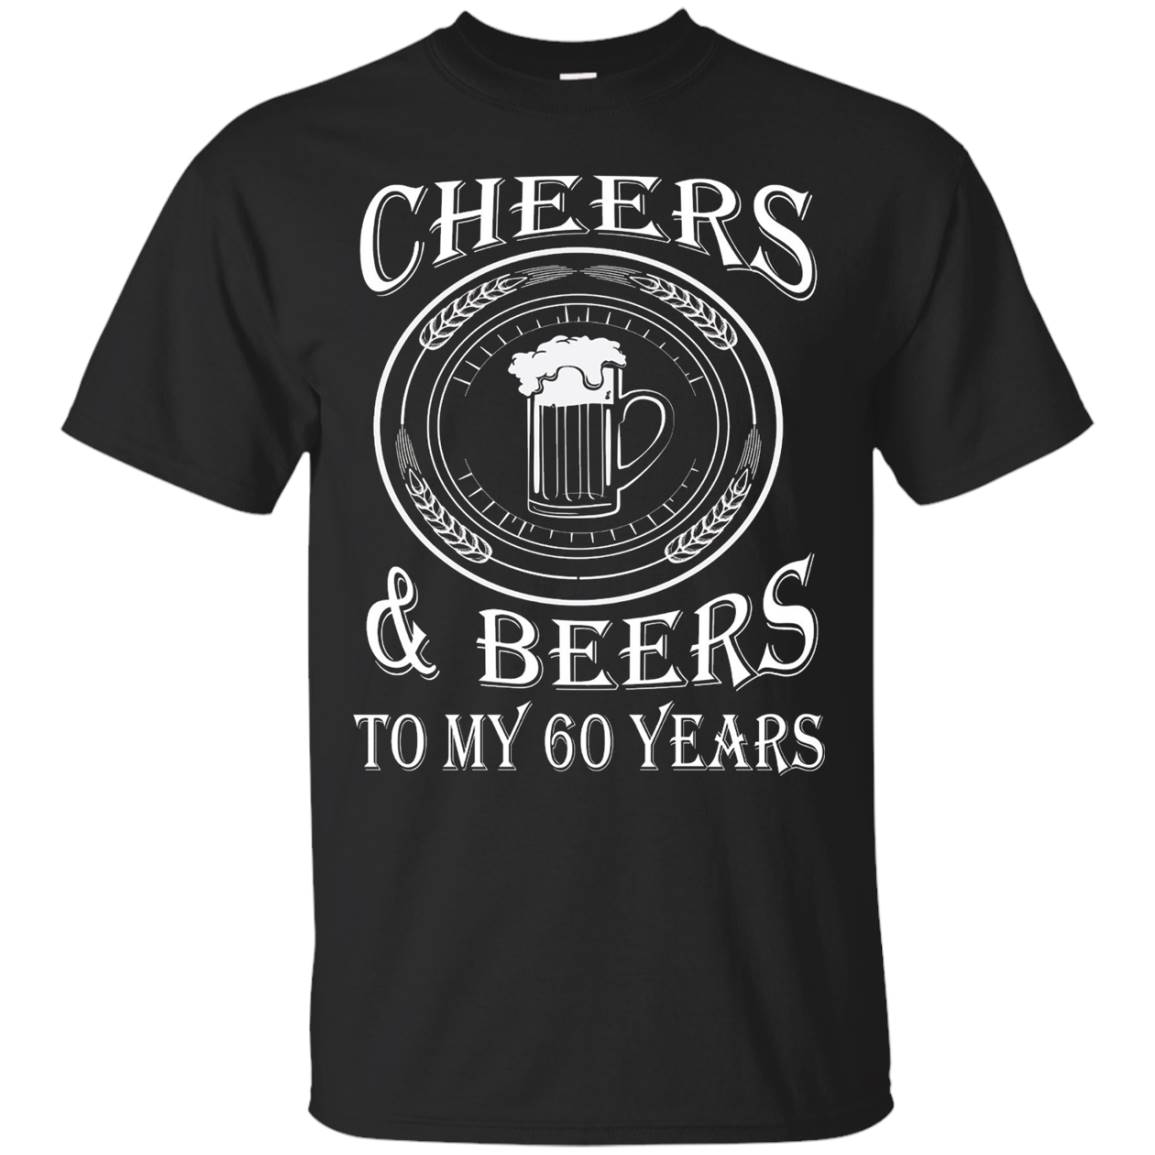 Cheers and Beers to My 60 Years – 60th Birthday Gift T-Shirt